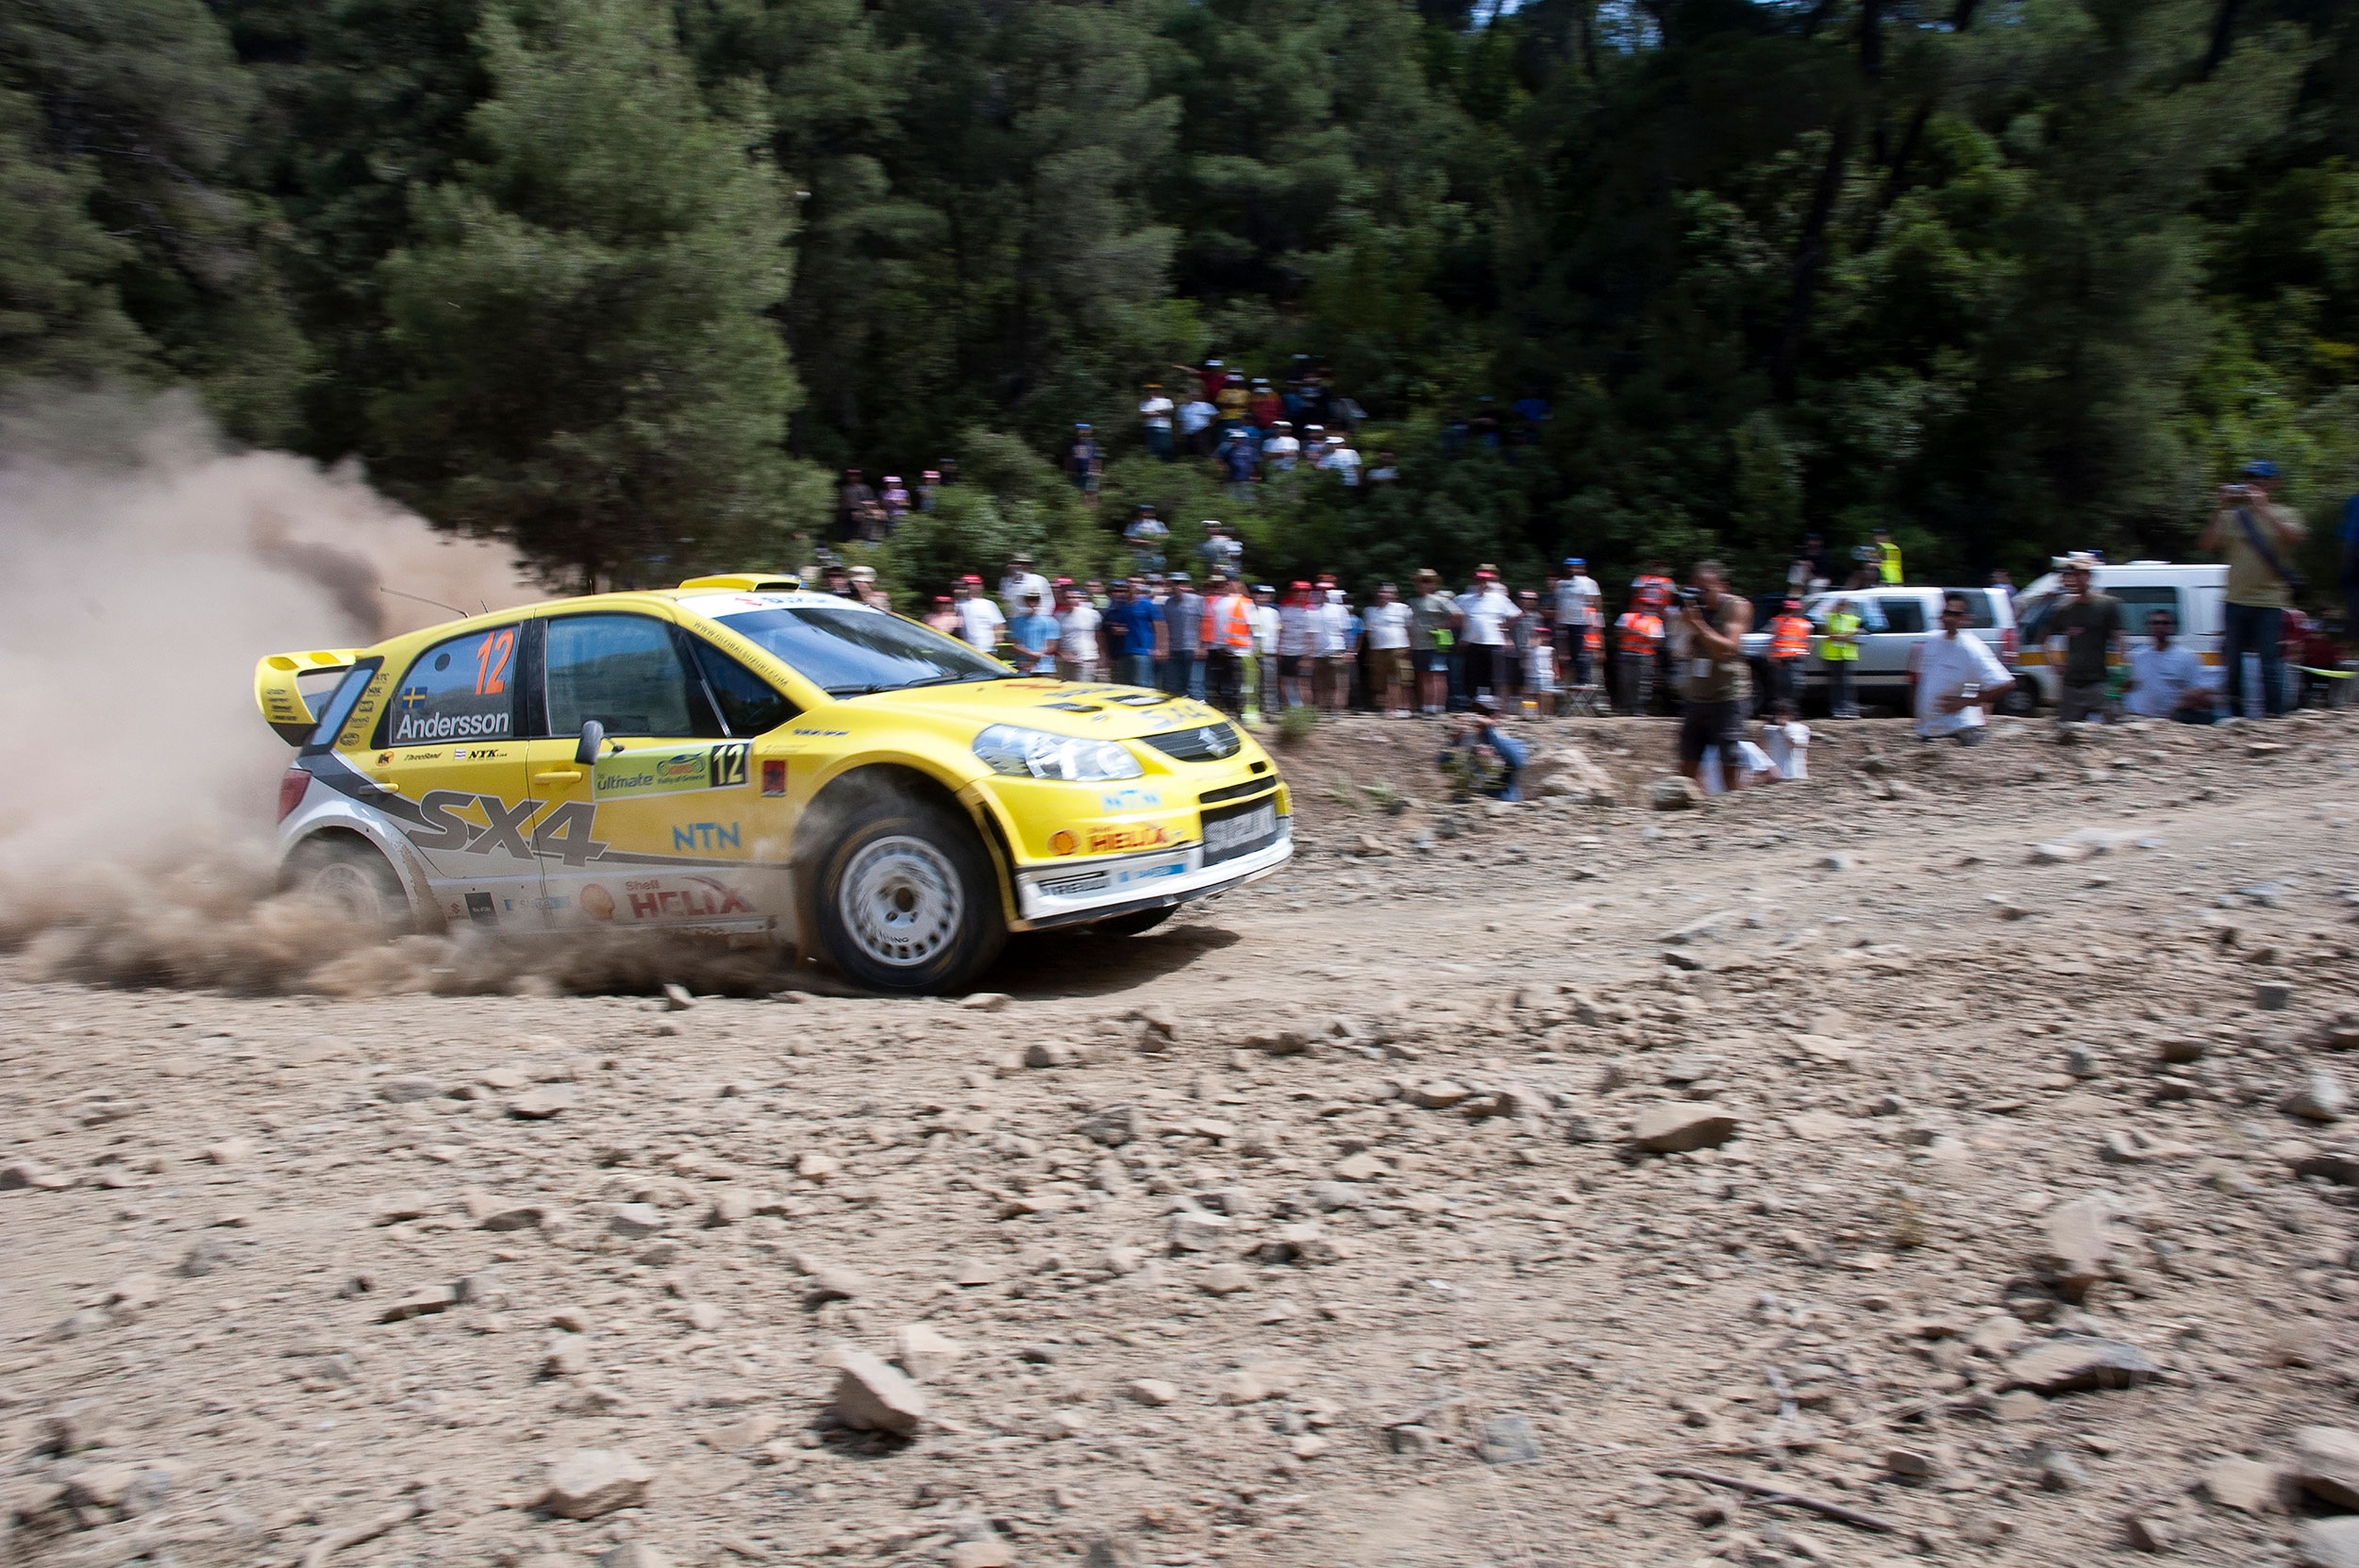 Suzuki WRC, P G Anderson, Rally Acropolis, Willi Nothers